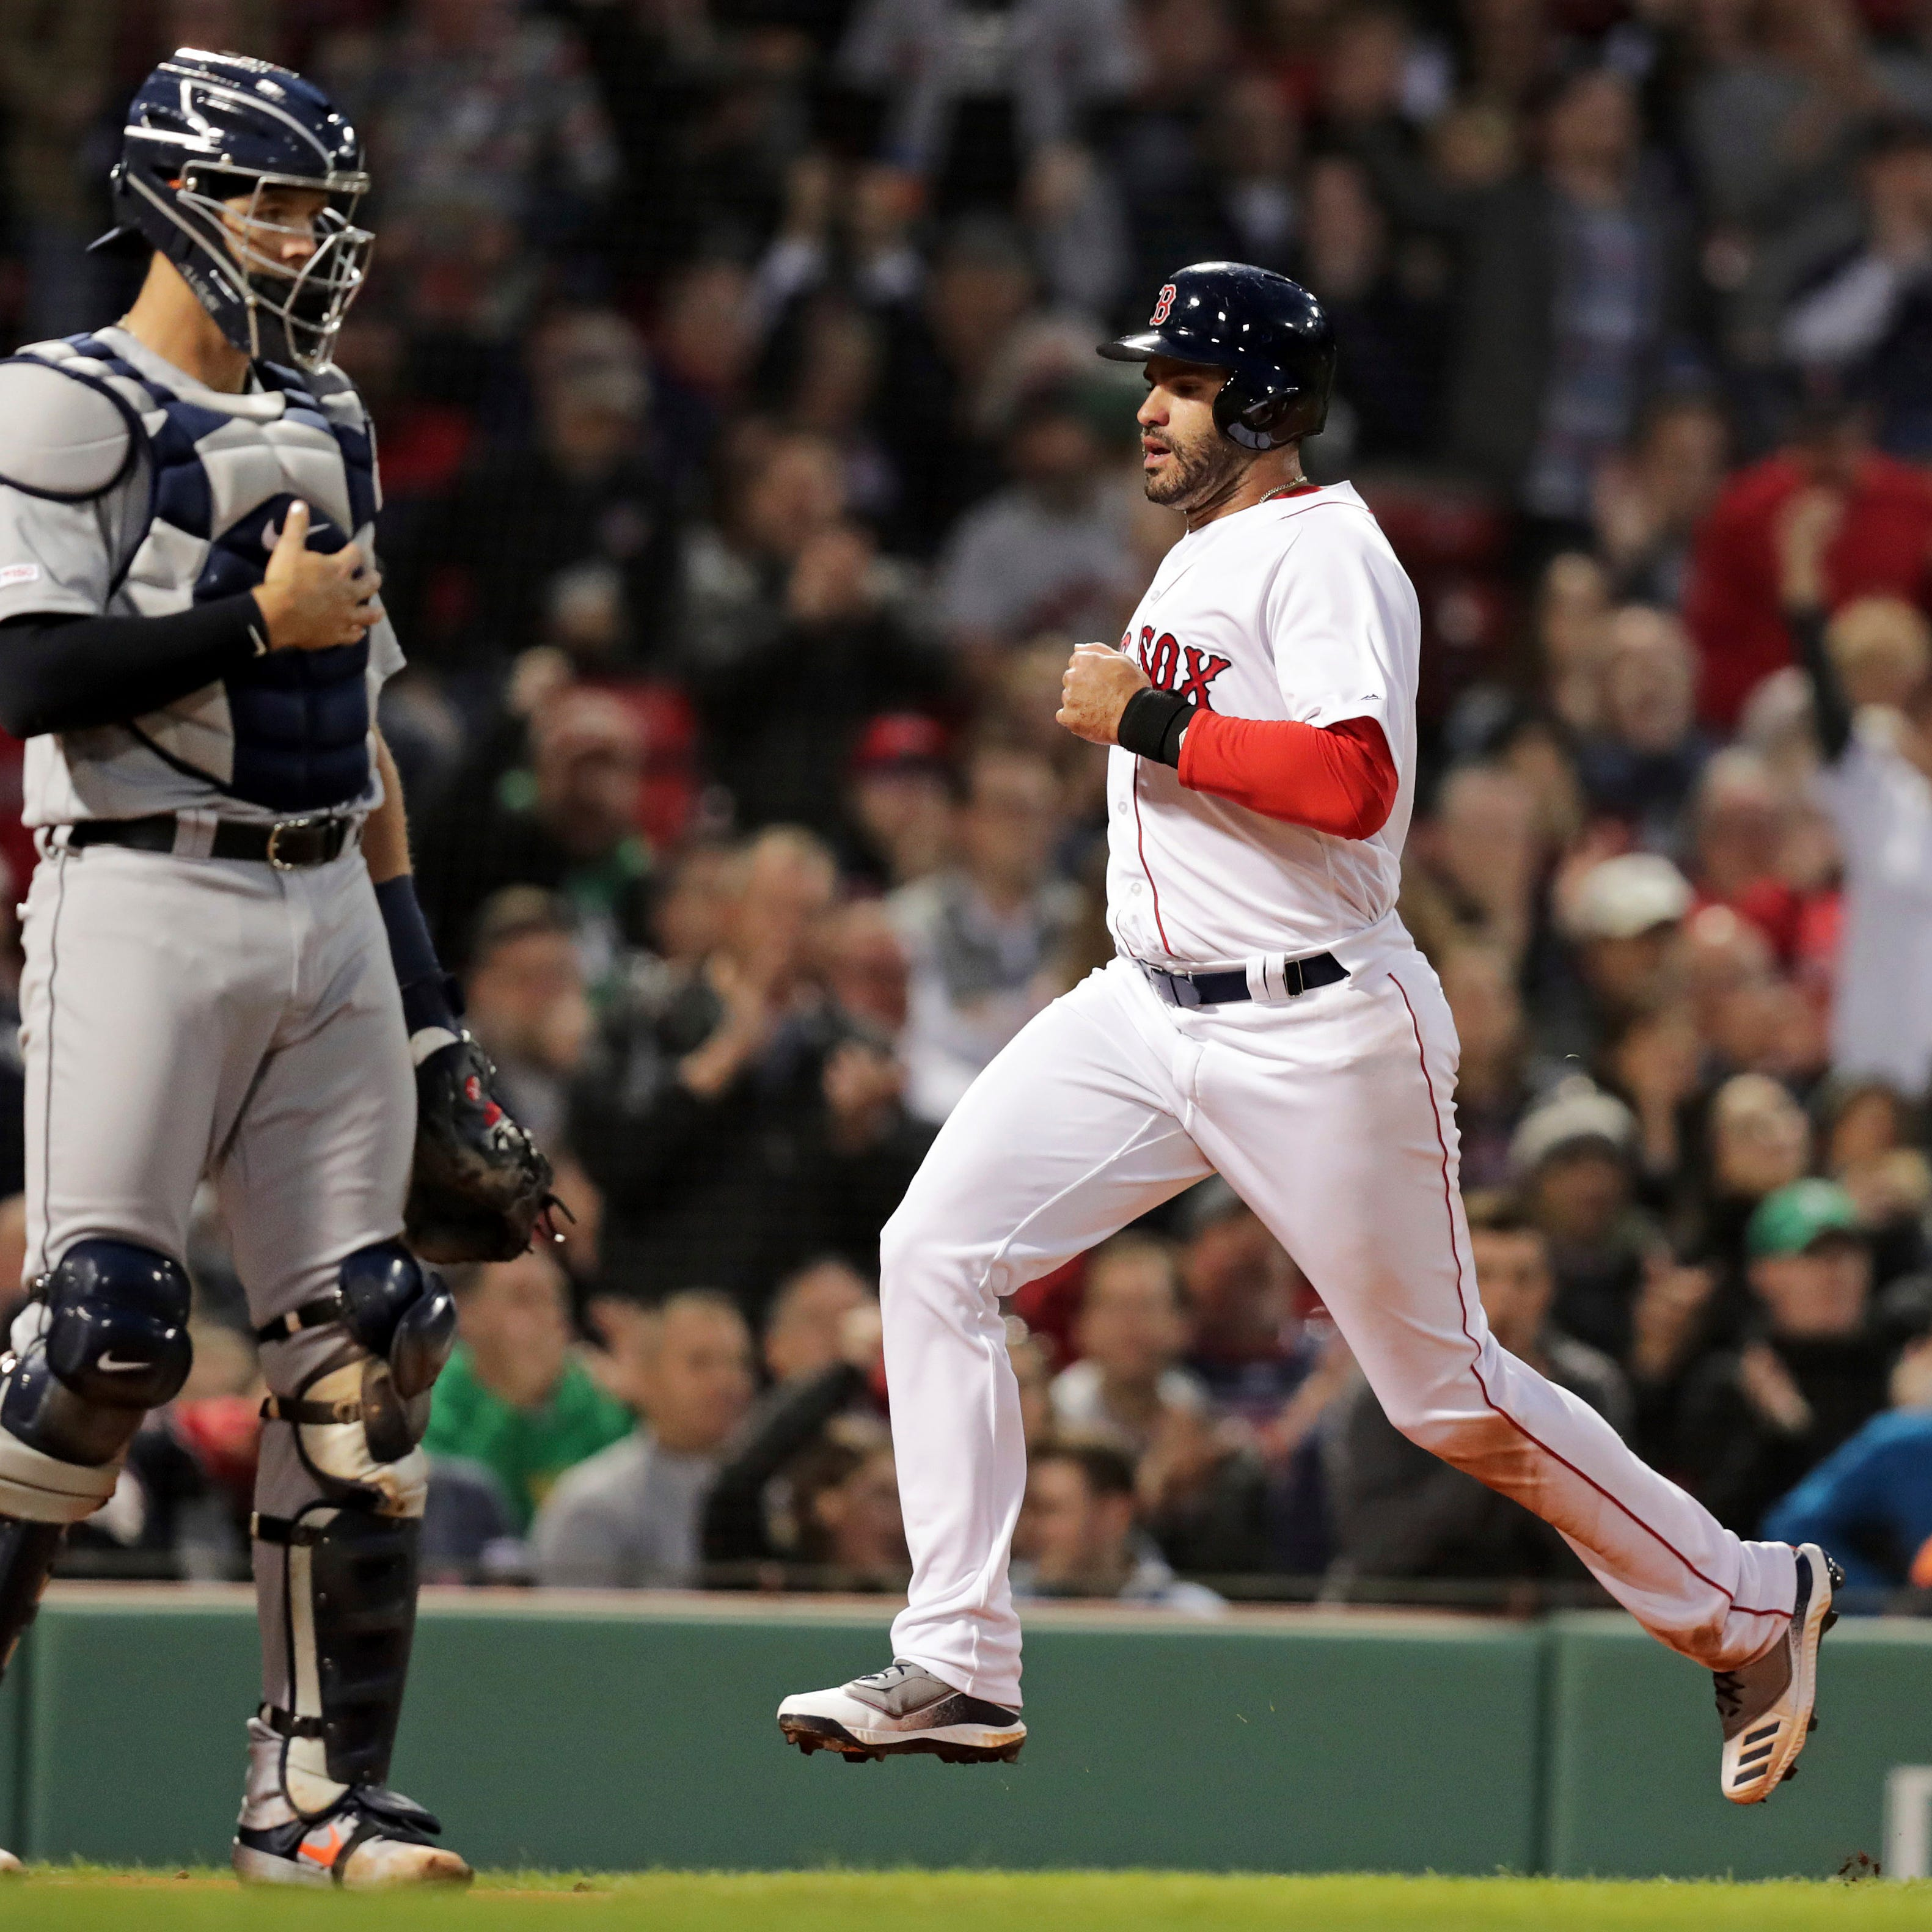 J.D. Martinez, Red Sox get their payback with 11-4 thrashing of Tigers